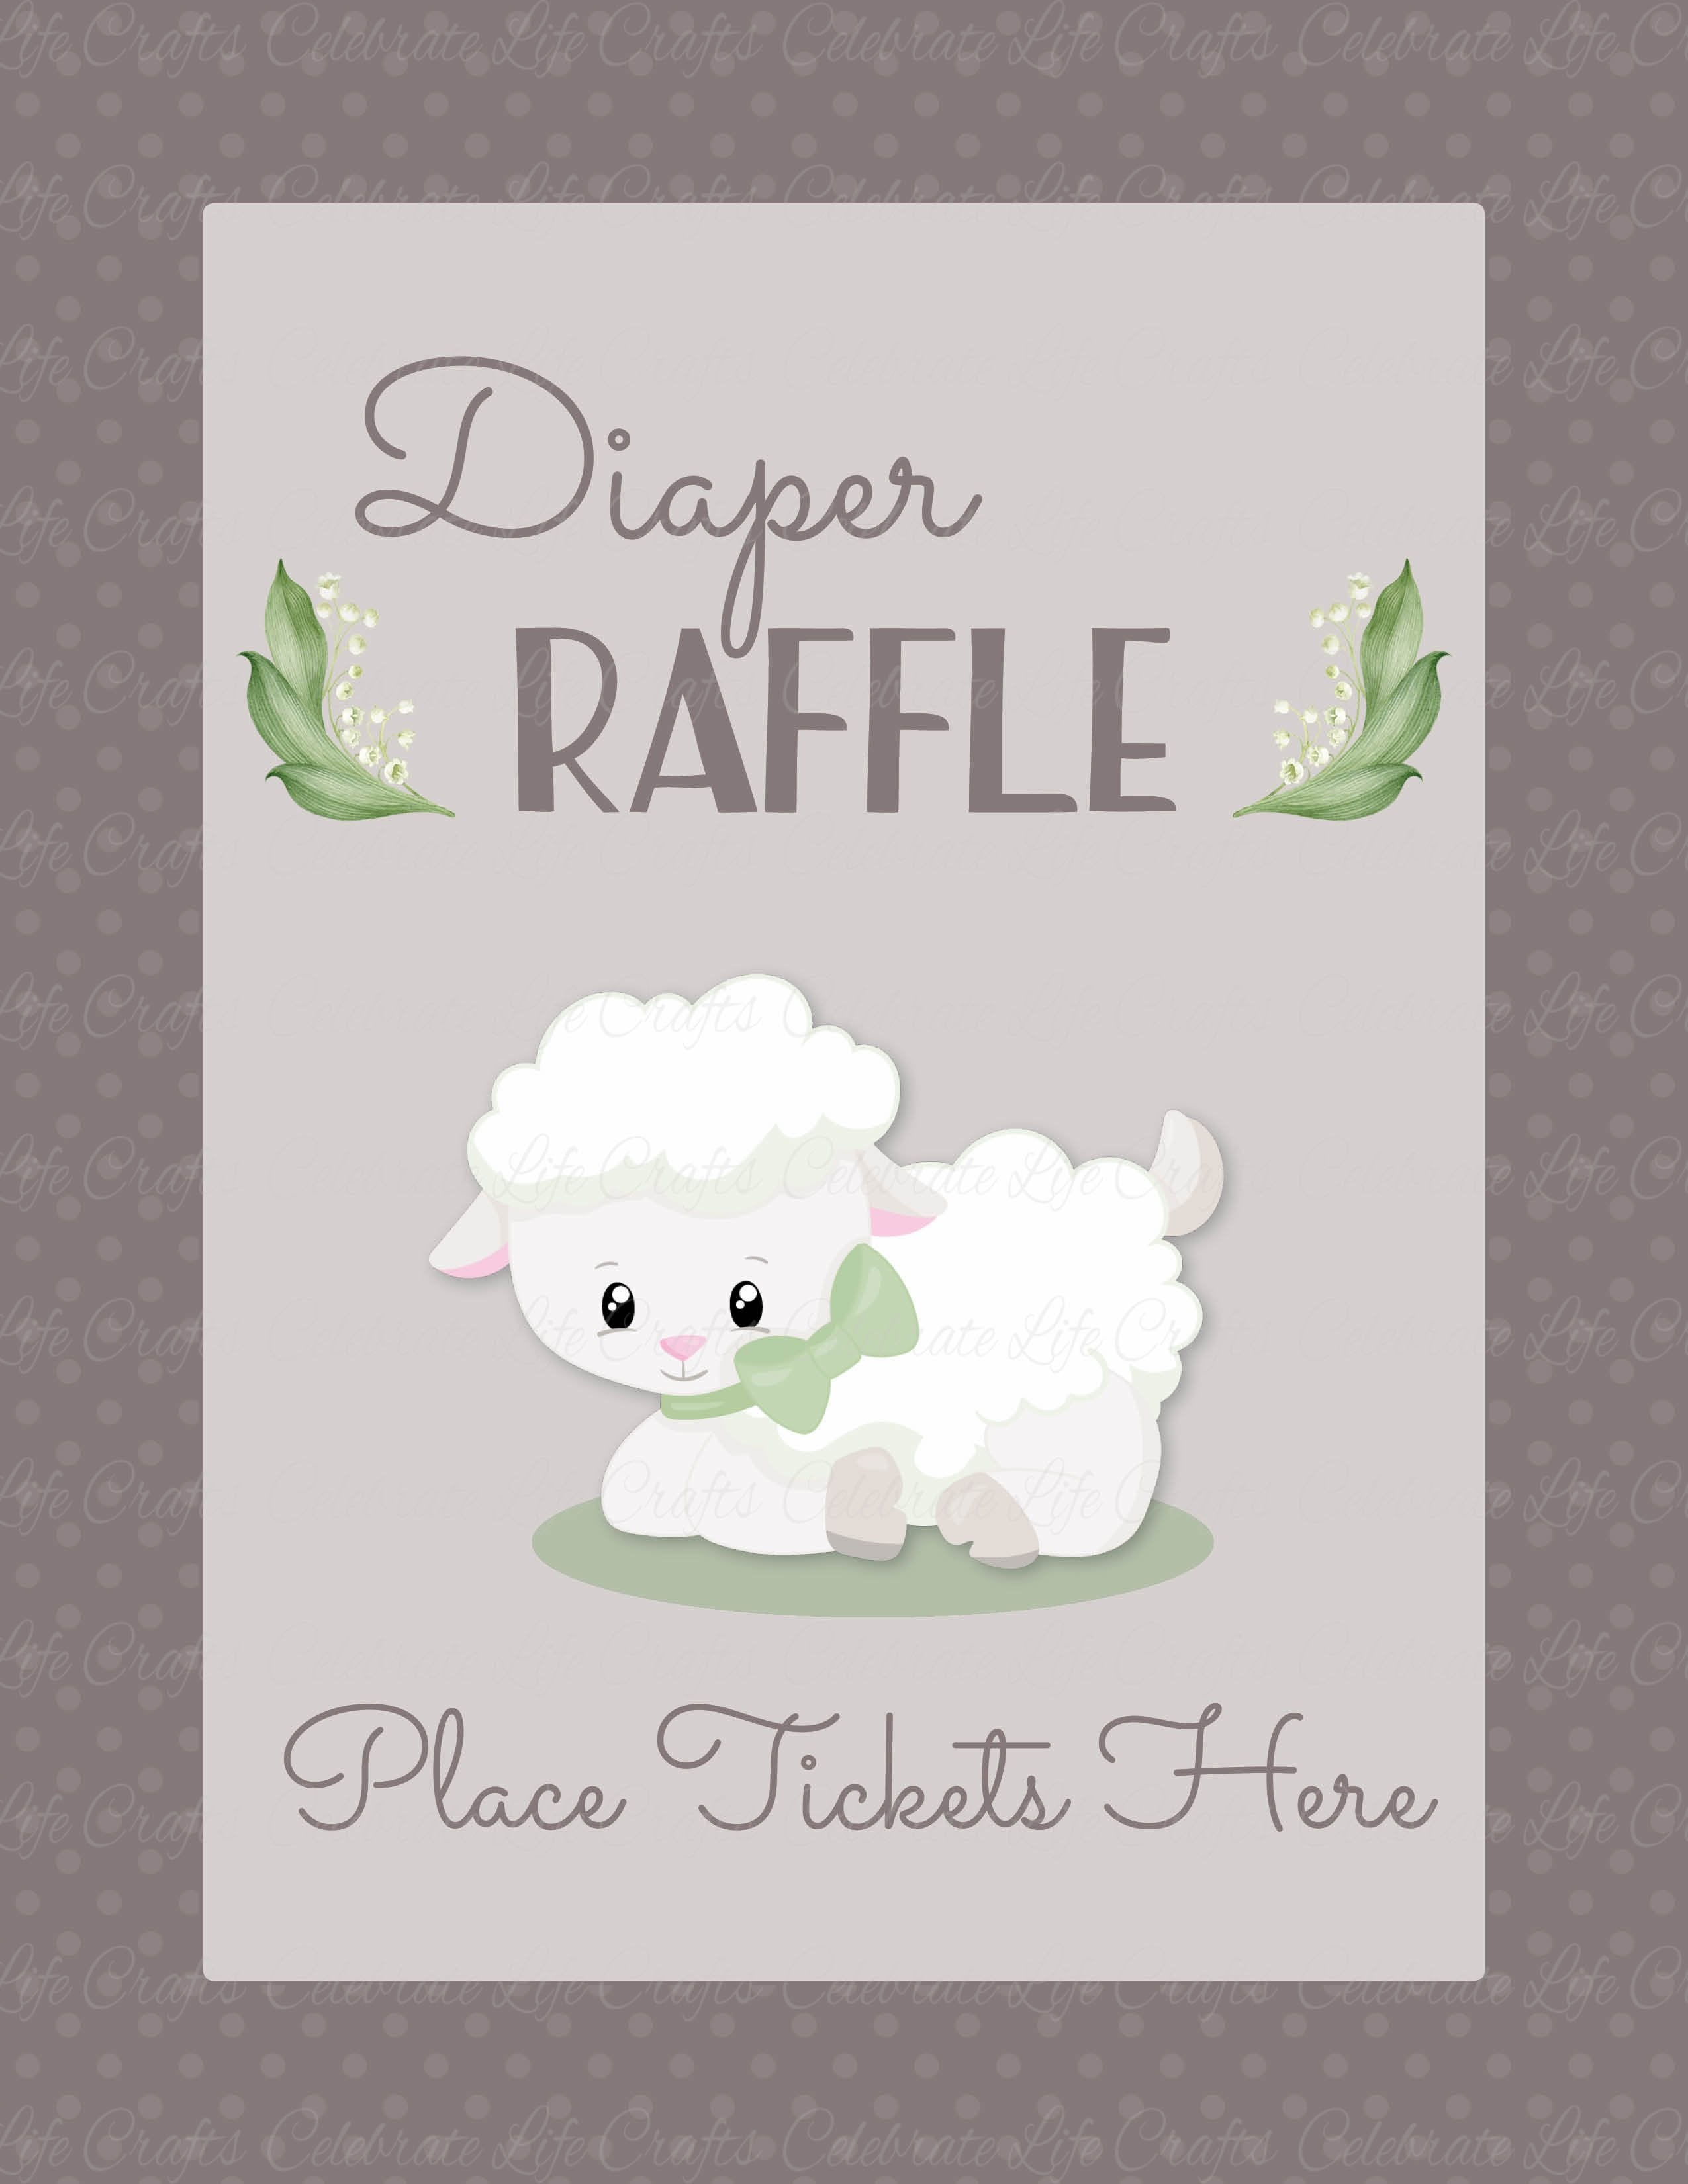 Diaper Raffle Tickets   PRINTABLE DOWNLOAD   Lamb Baby Shower Invitation  Inserts   B39001.